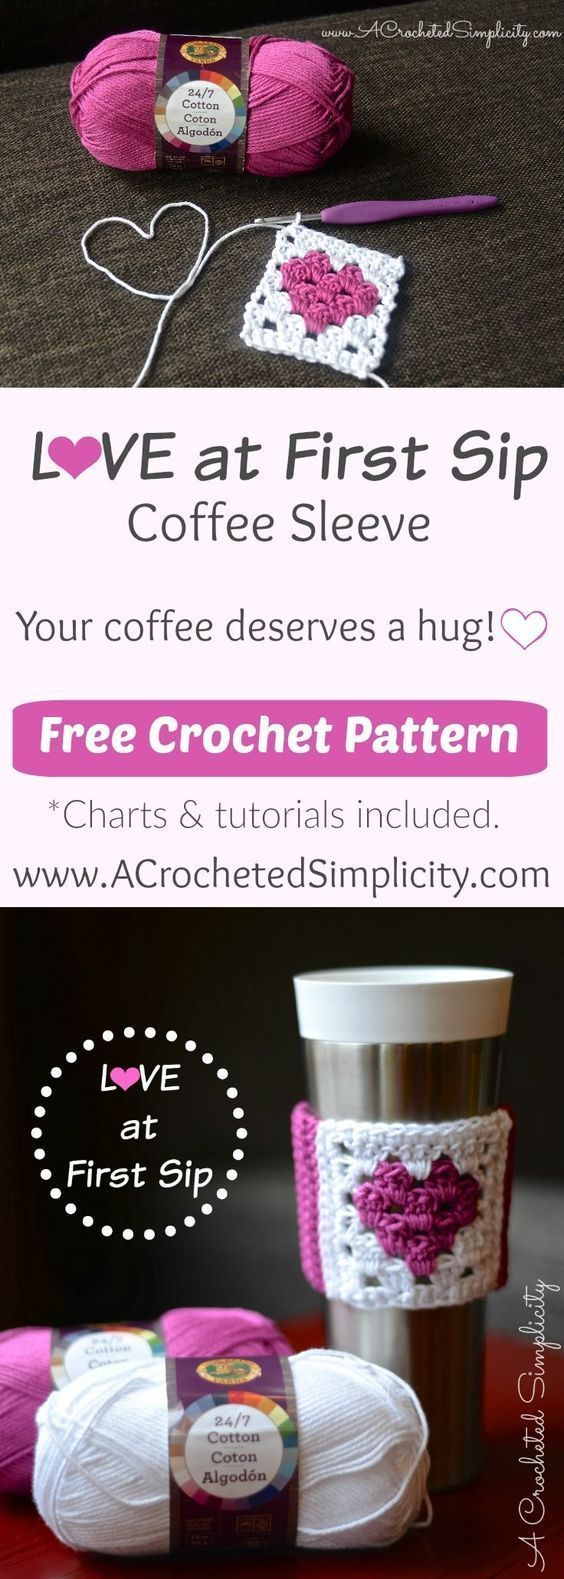 Free Crochet Pattern - Love at First Sip Coffee Sleeve by A Crocheted Simplicity #CrochetValentines